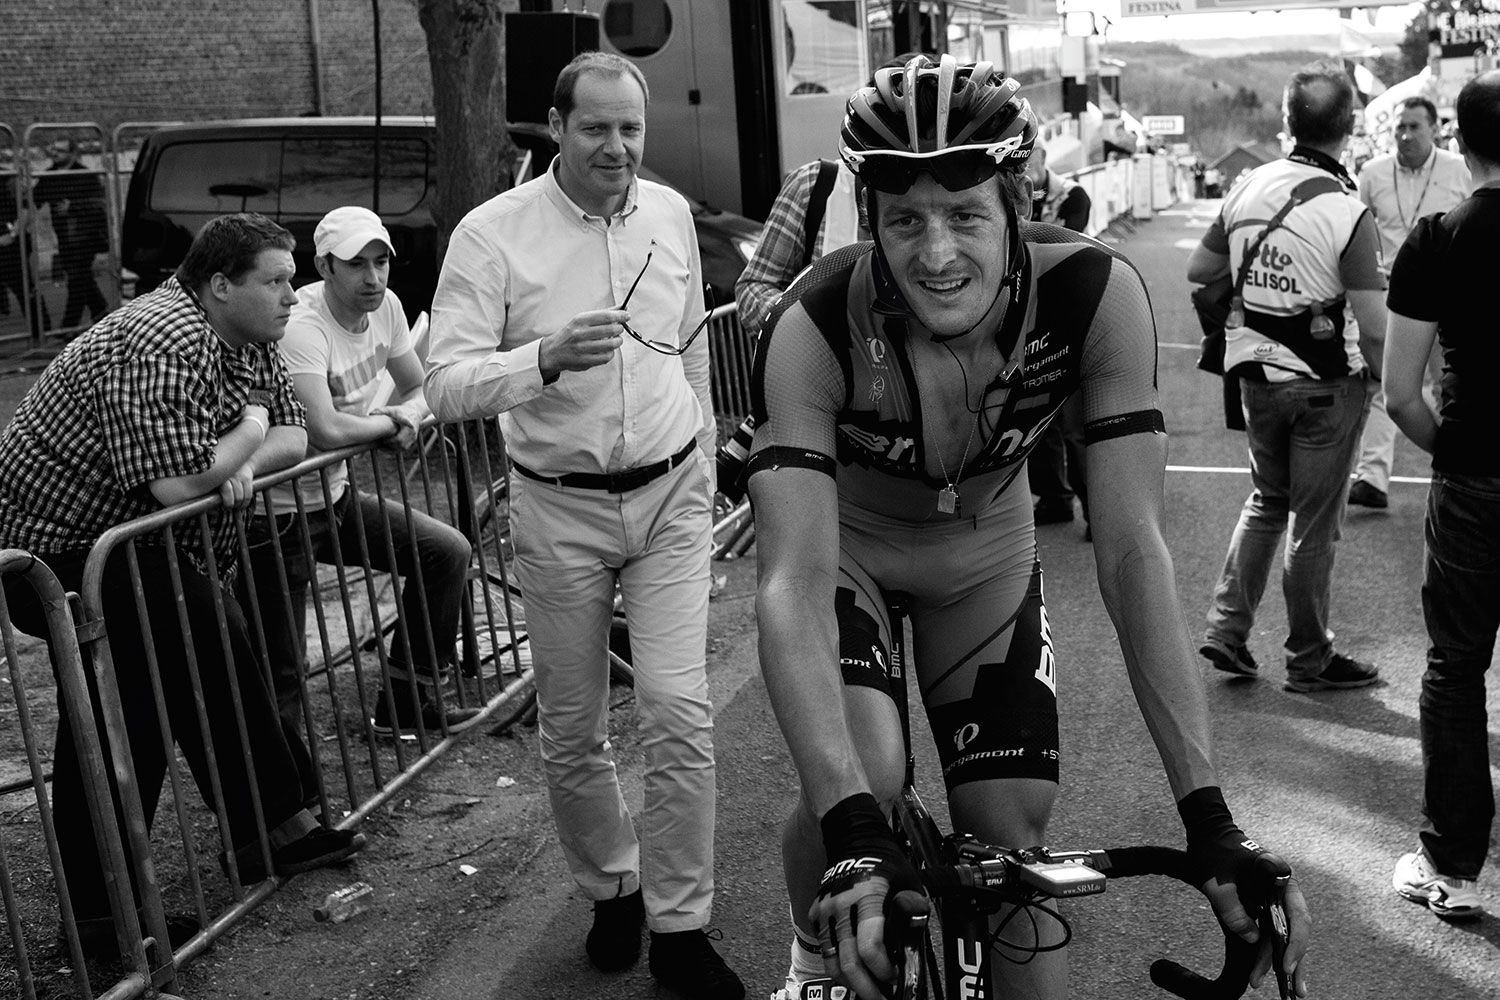 110. Marcus Burghardt and Christian Prudhomme